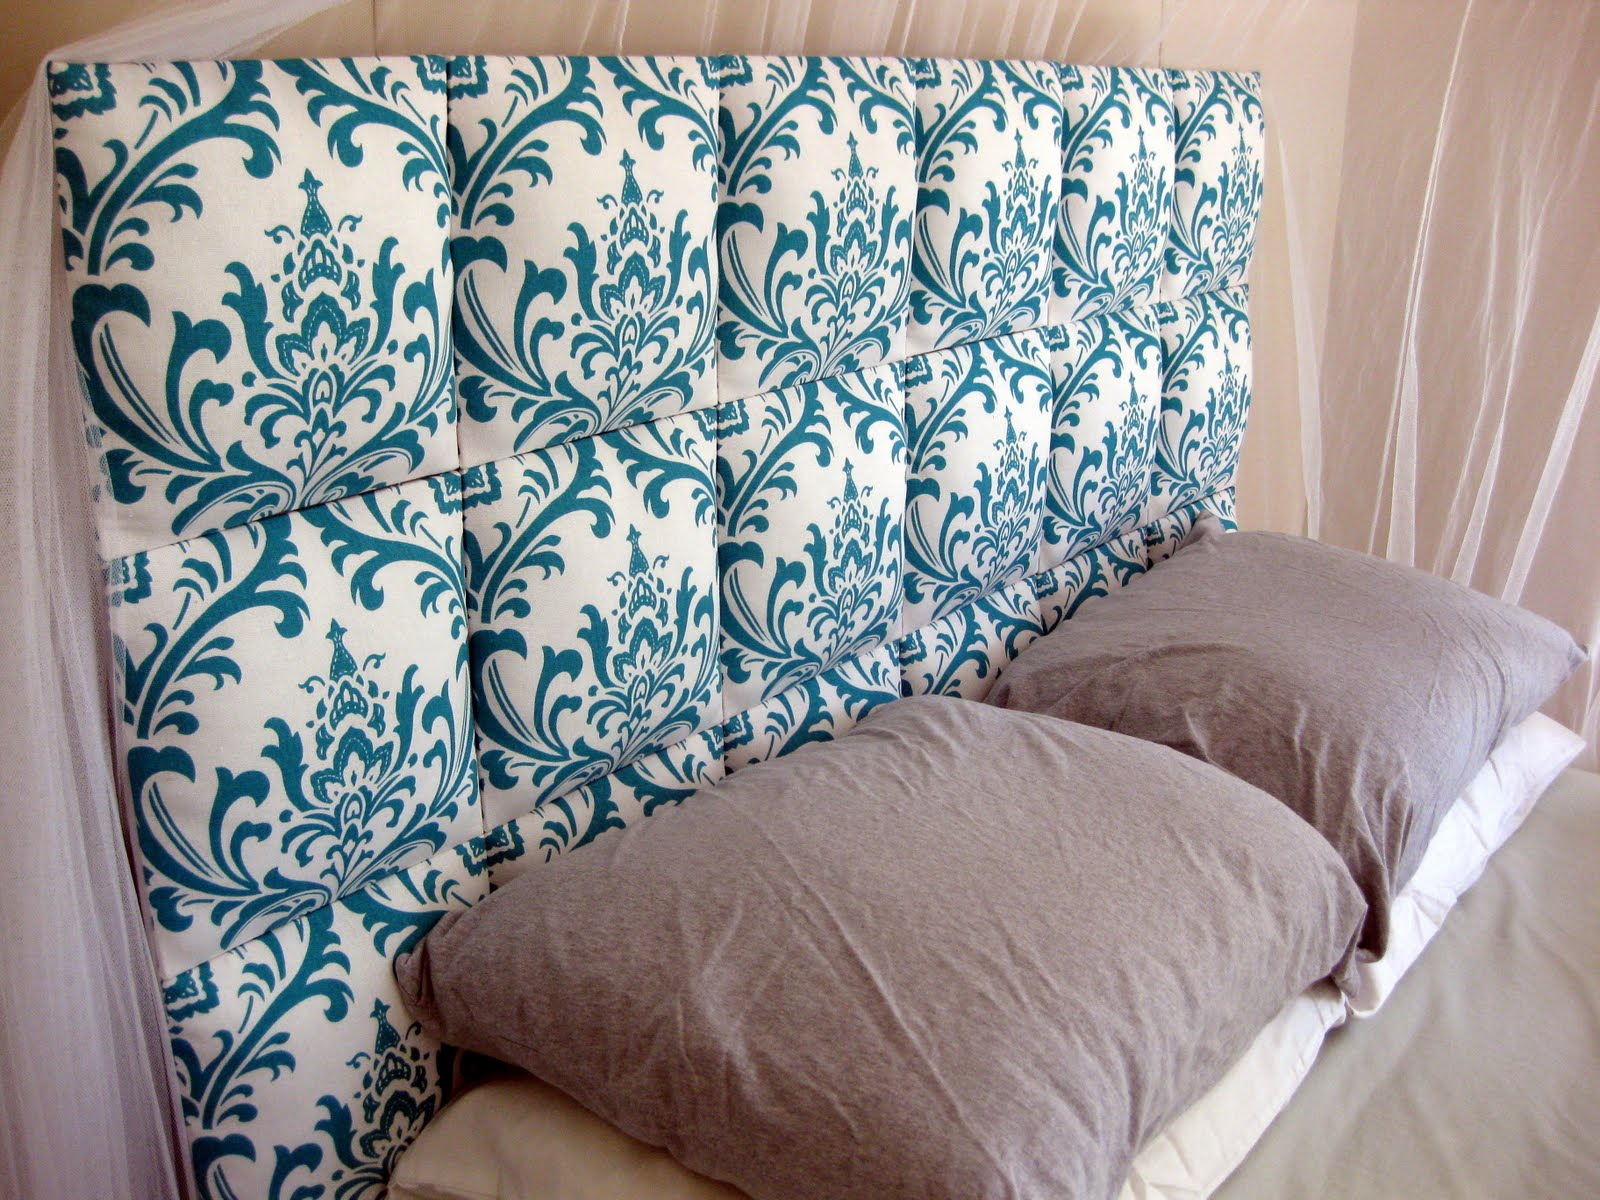 Easy Upholstered DIY Headboard Tutorial - Reality Daydream